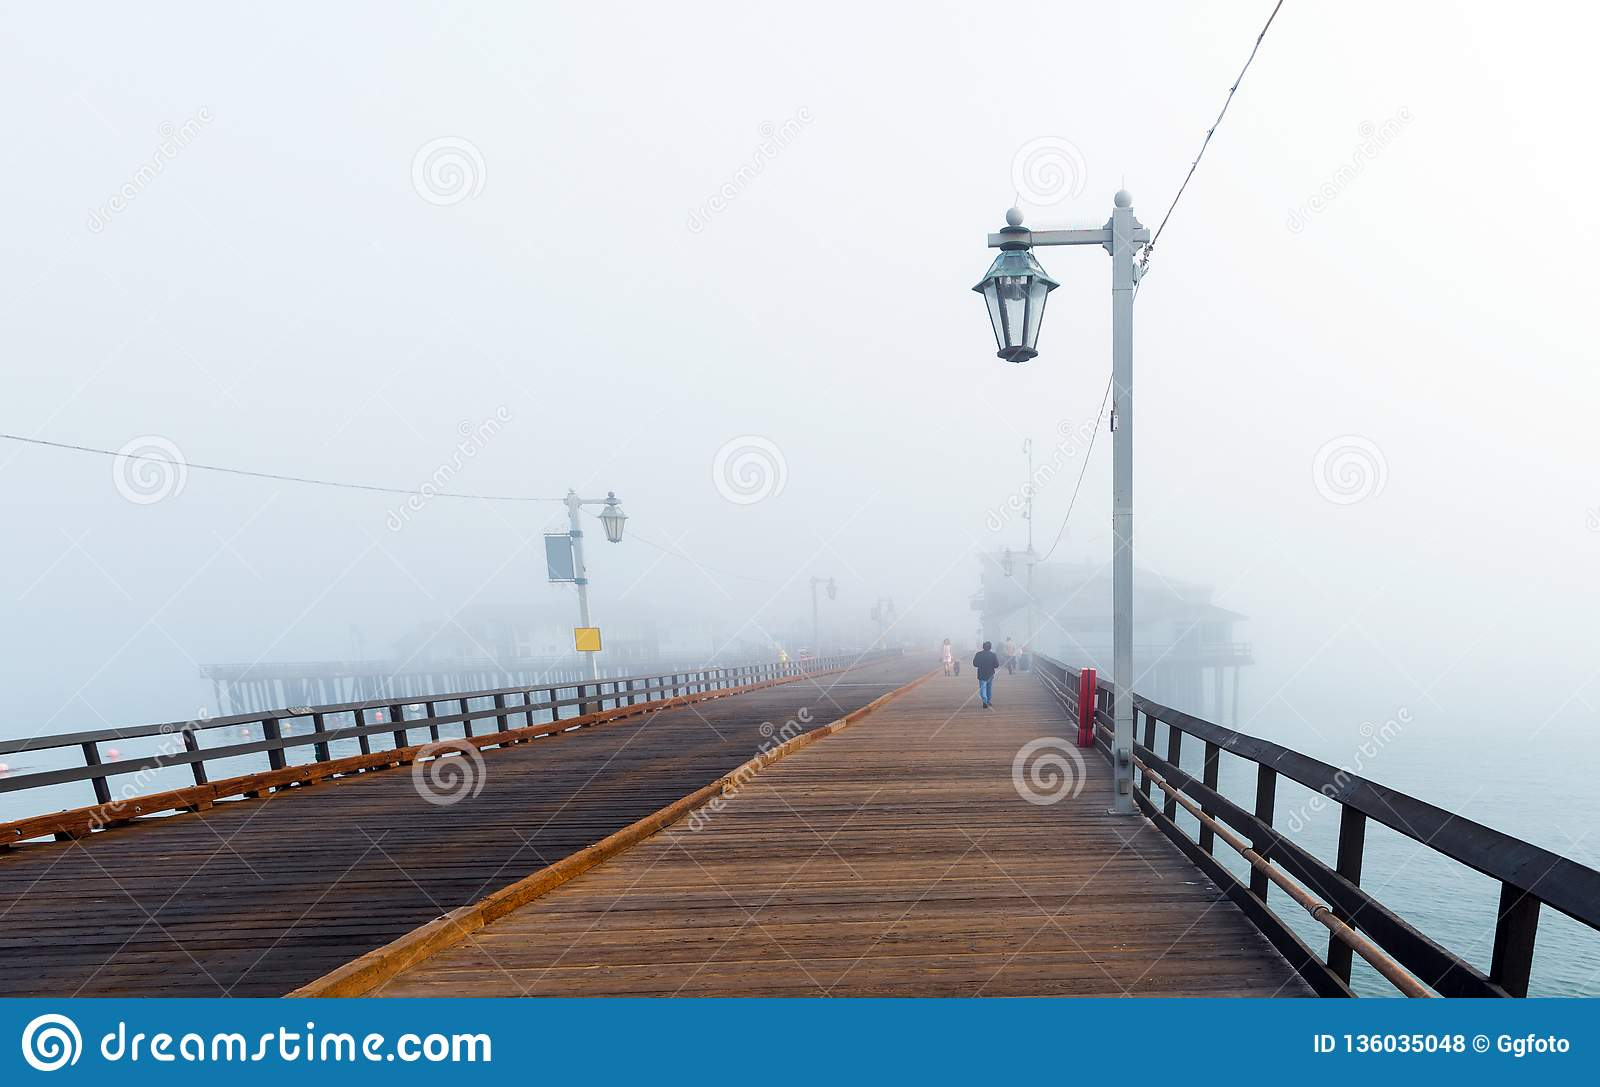 View of the wooden bridge in foggy weather, Santa Barbara, California, USA. Copy space for text